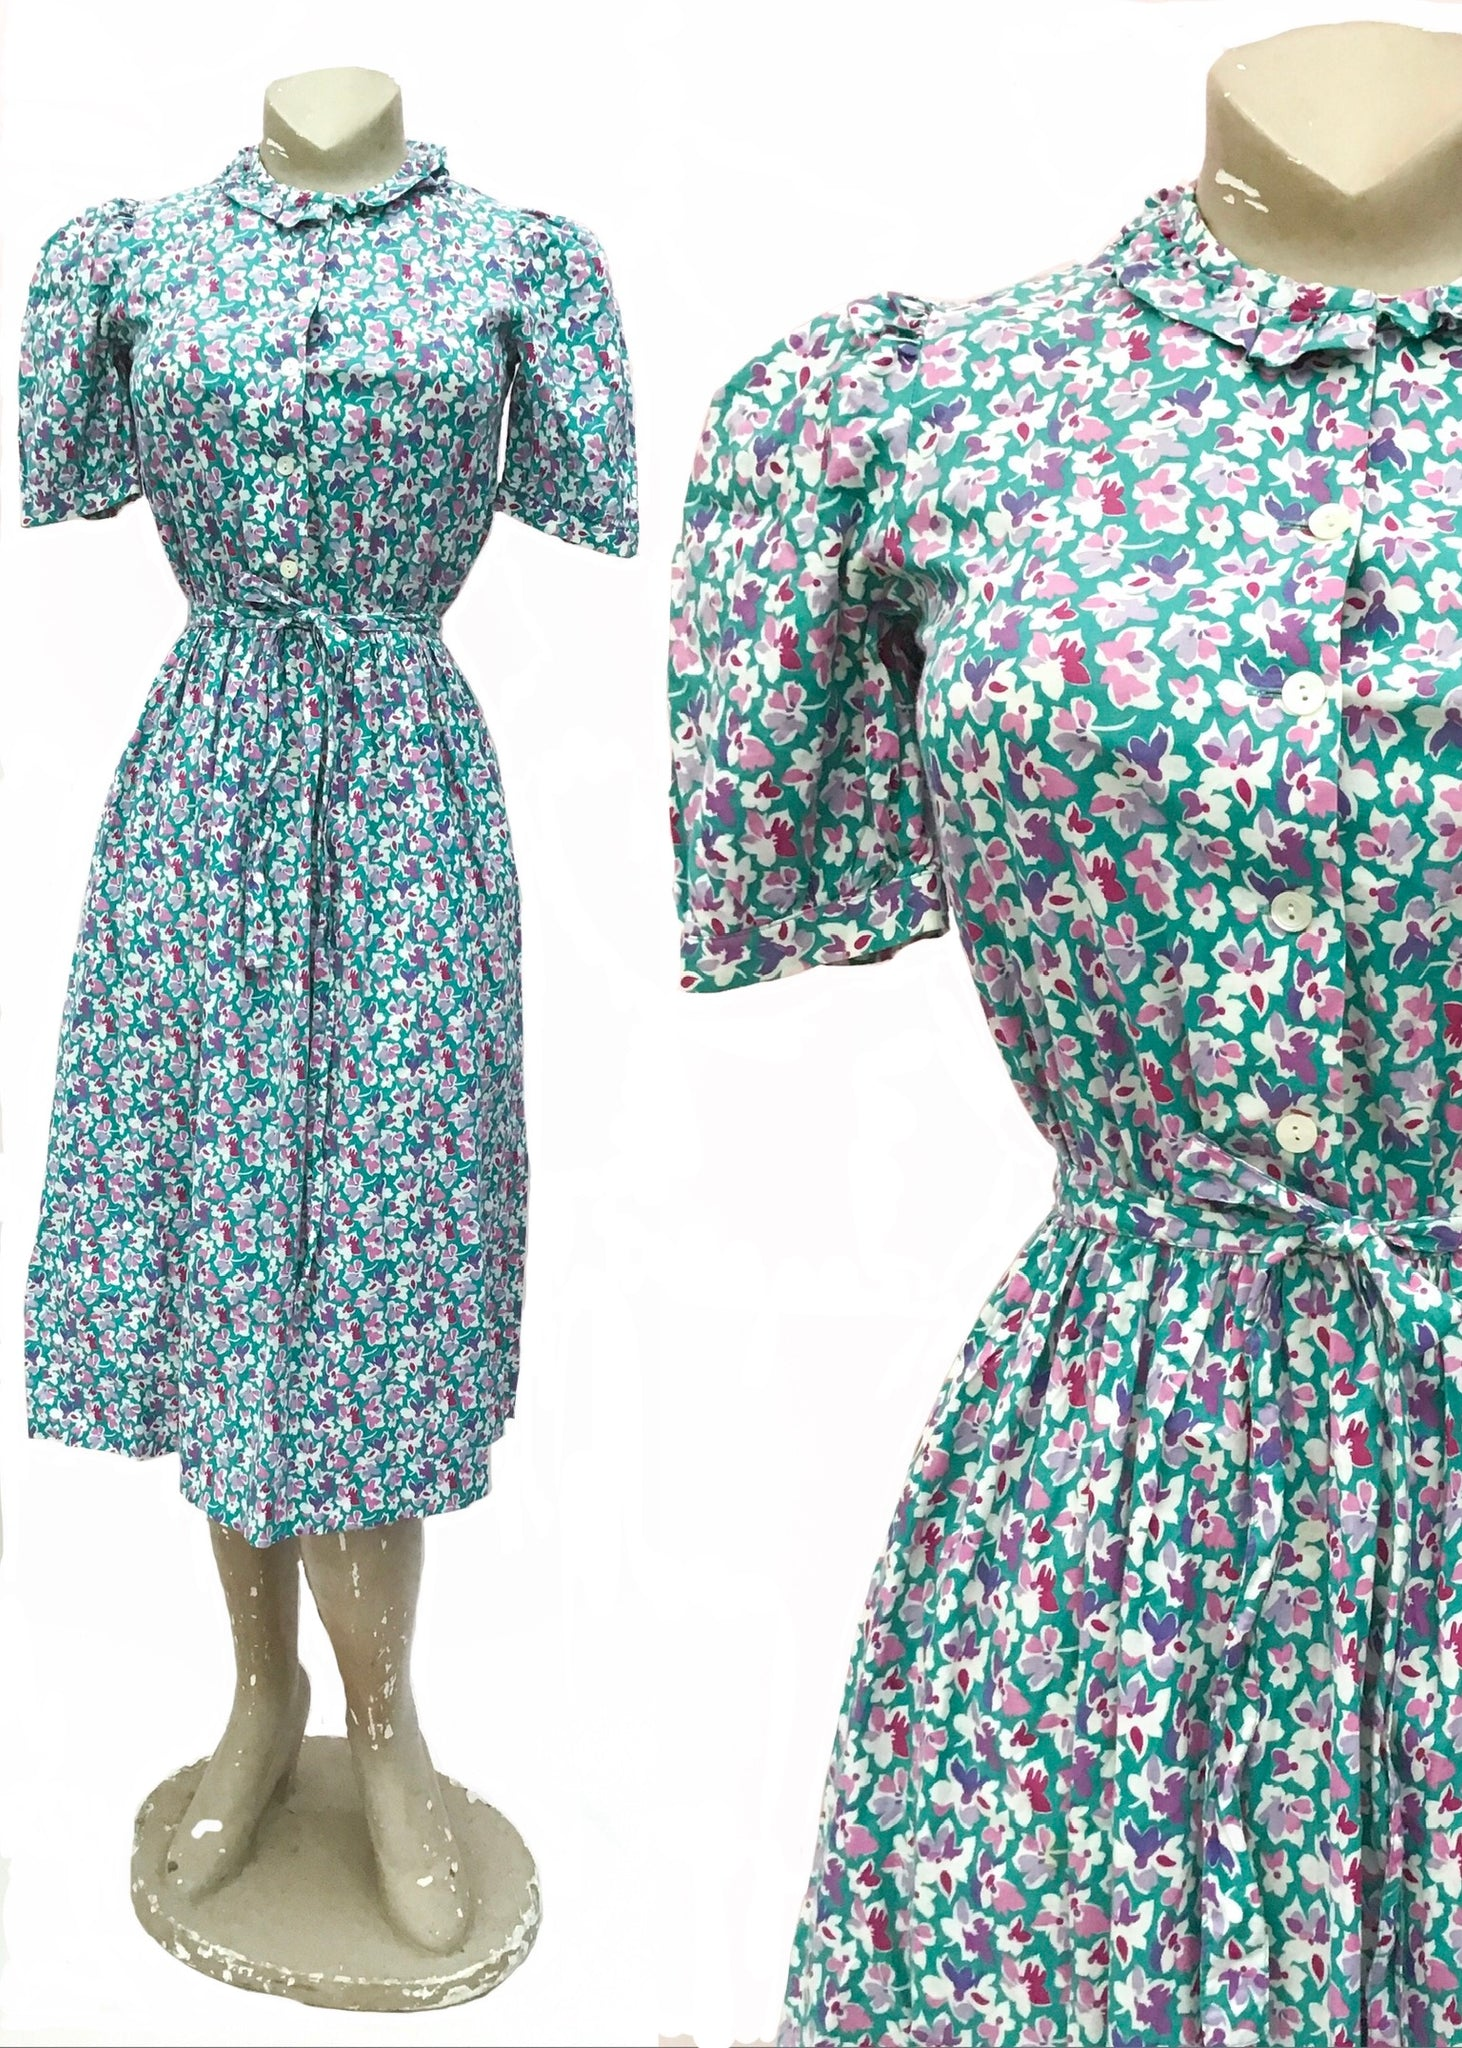 1970s 40s Style Vintage Lilac Turquoise Floral Cotton Summer Dress